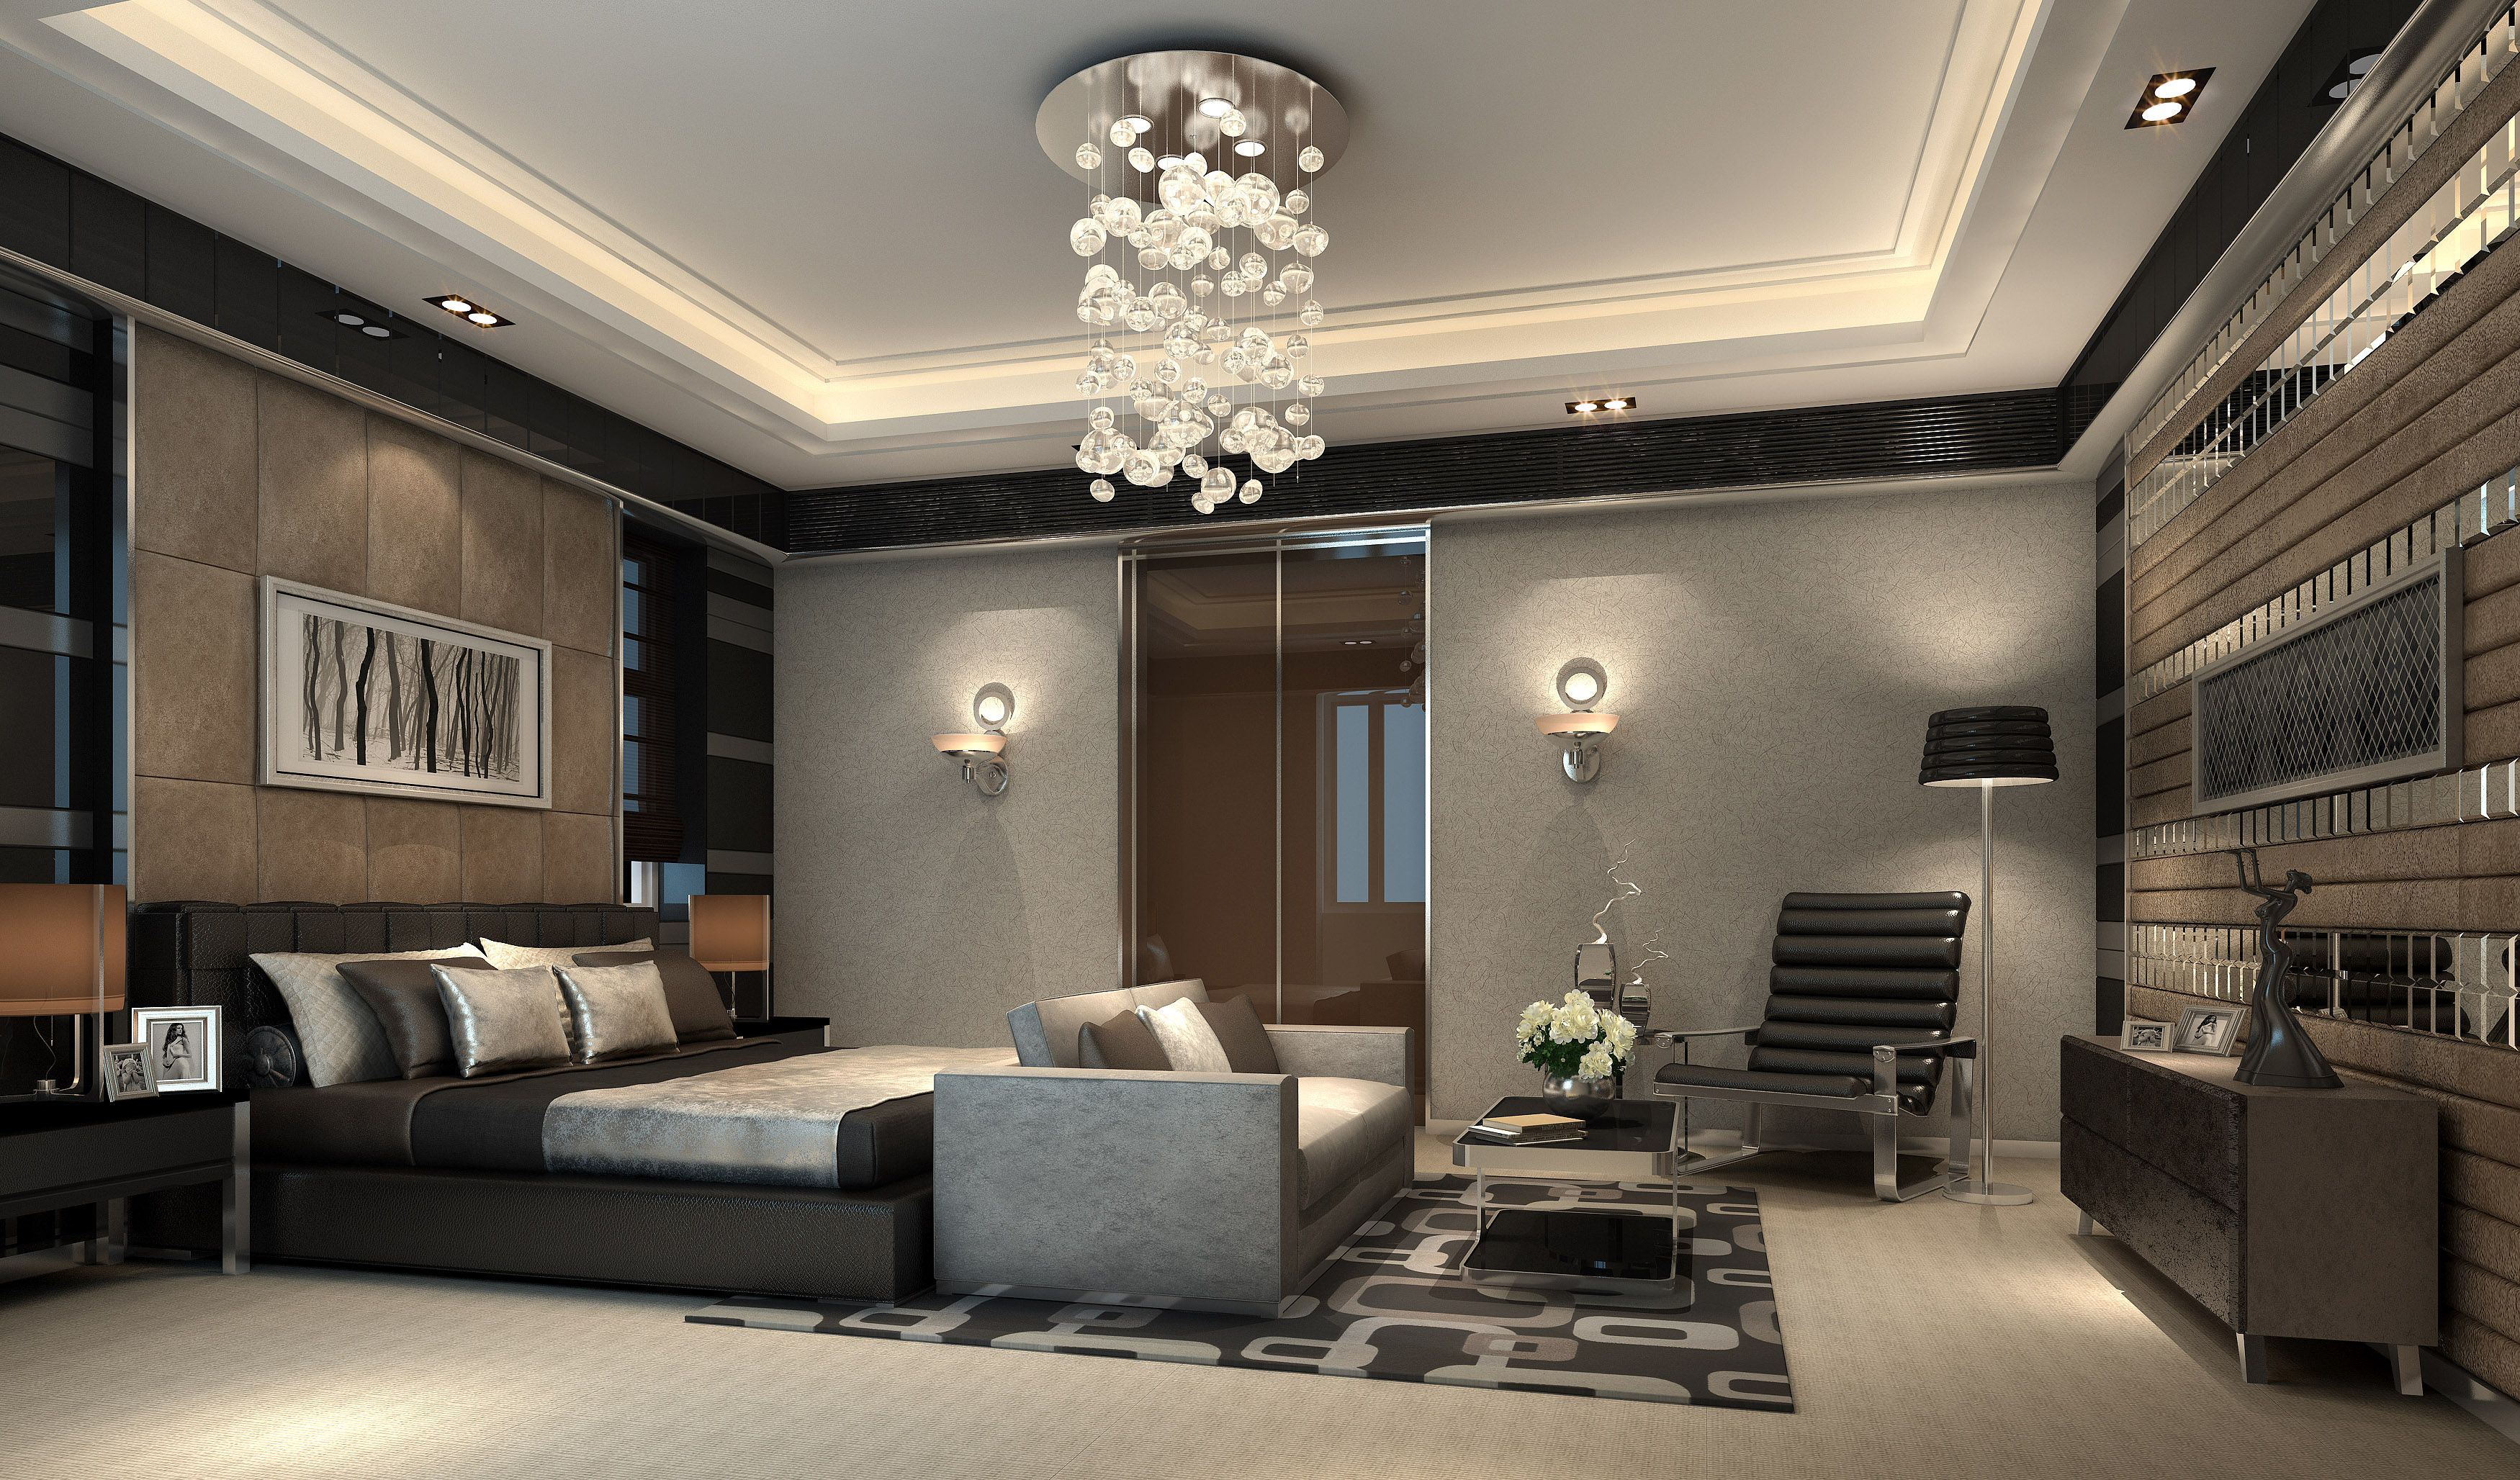 20 Luxurious Master Bedroom Design Hd Will Make You Feel Like